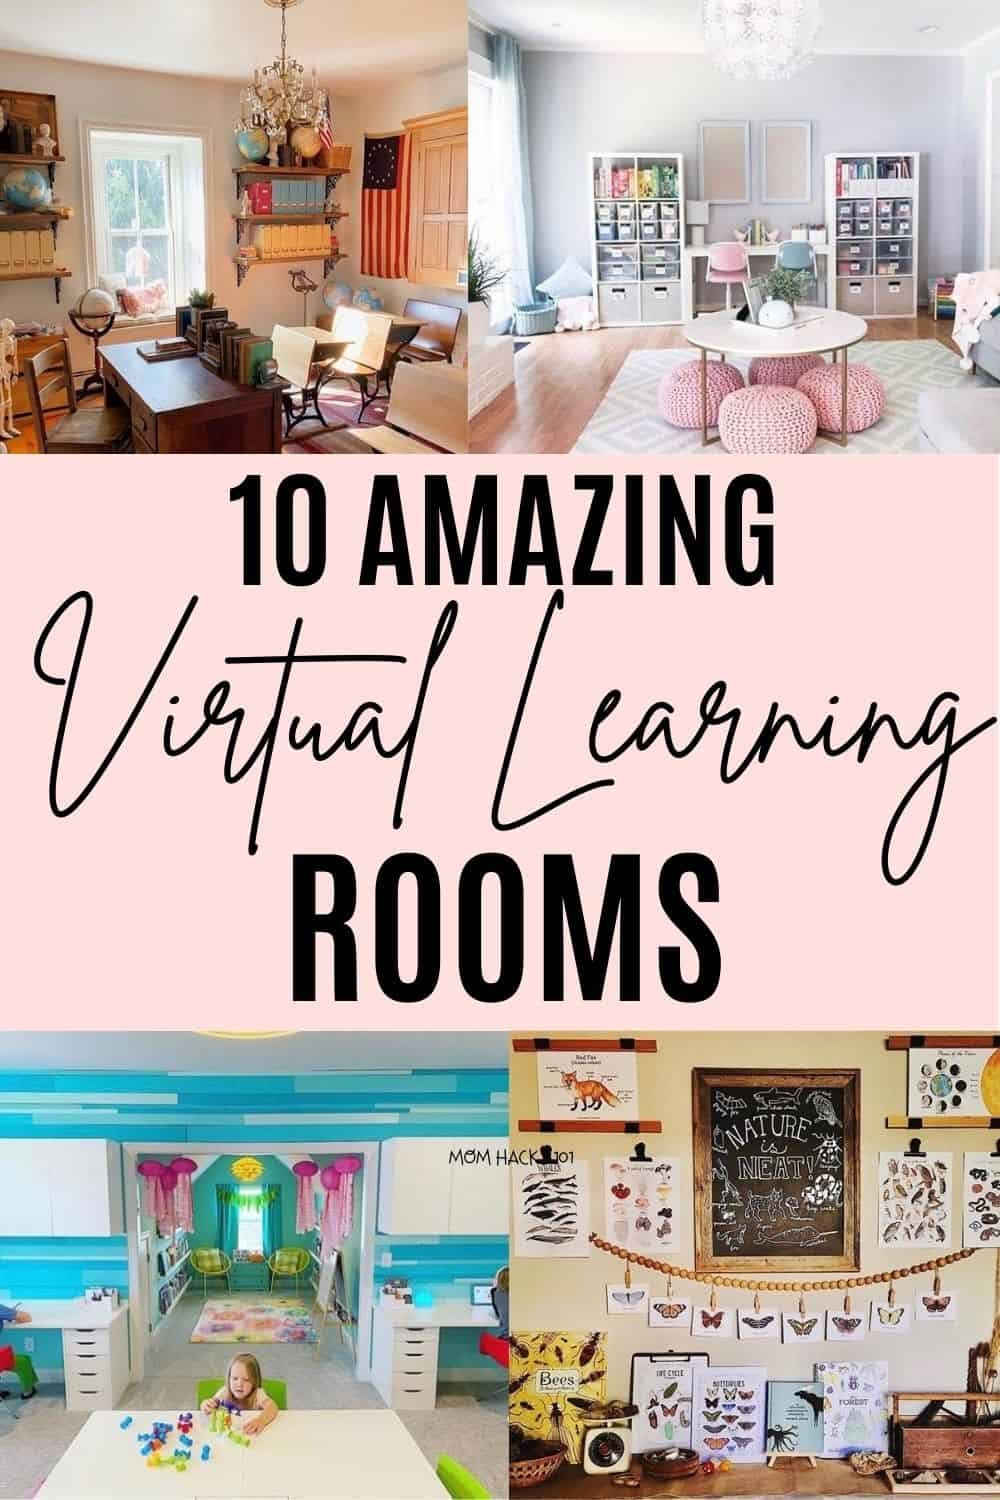 Virtual Learning rooms